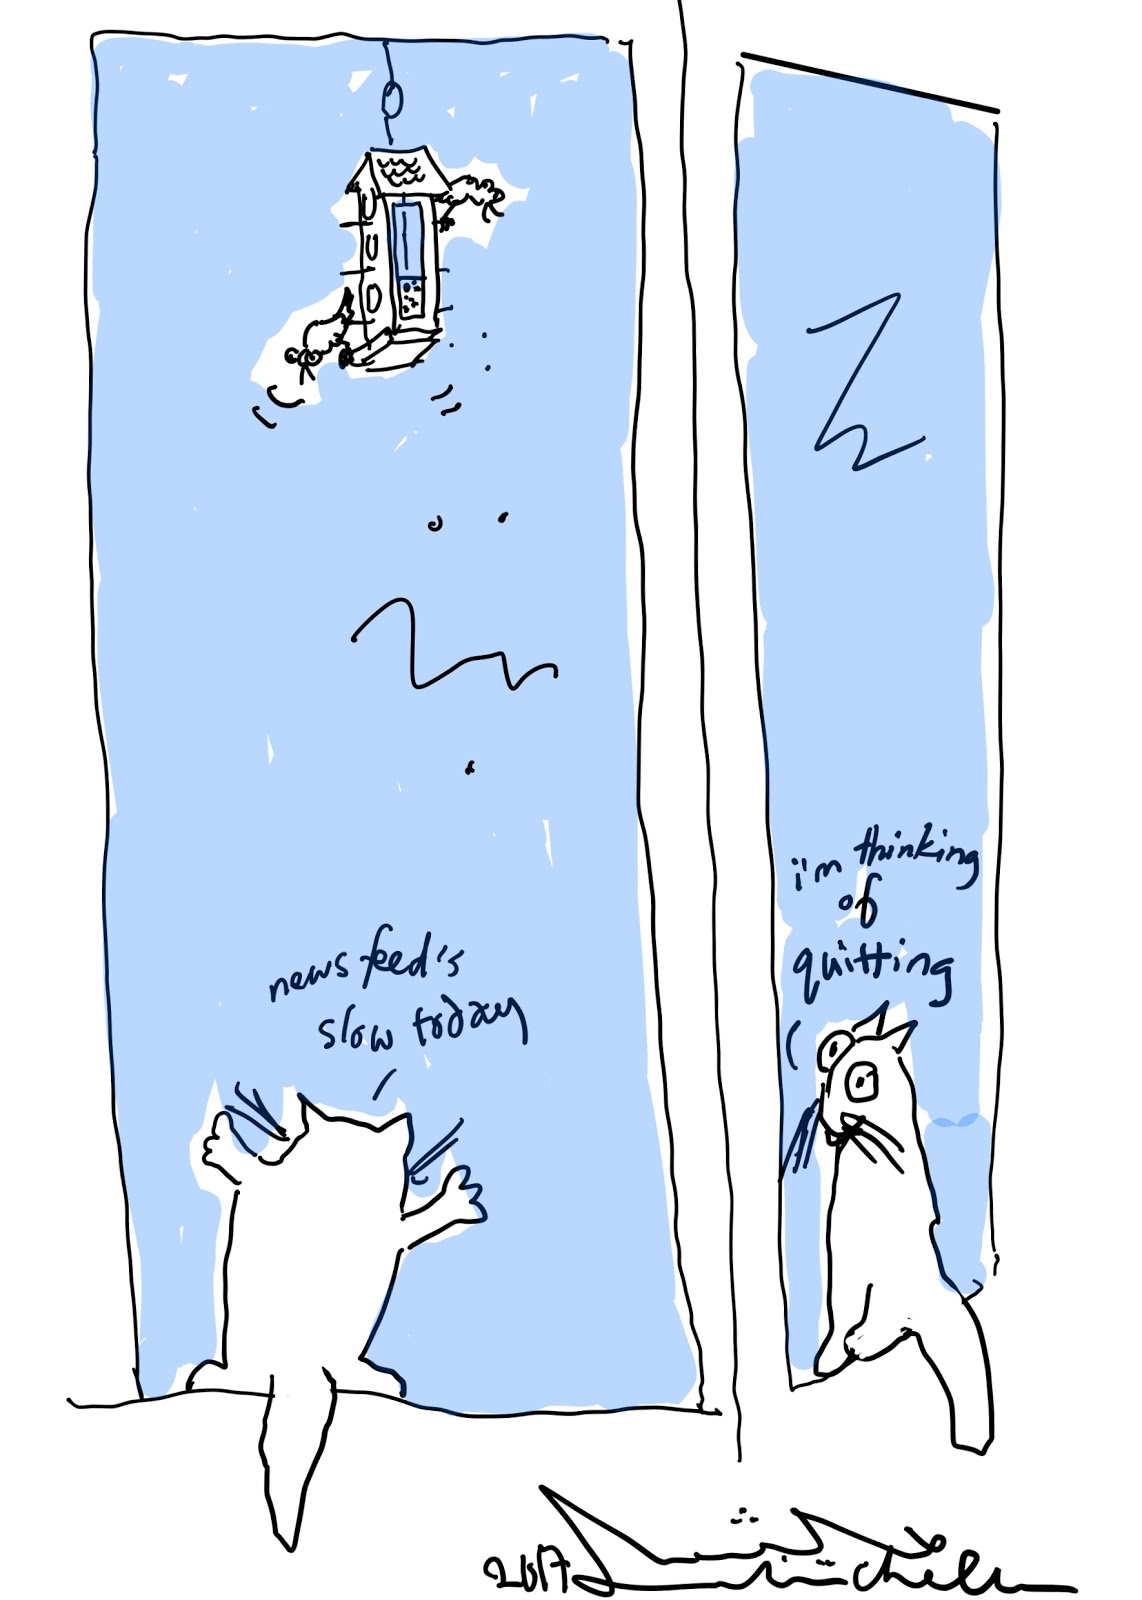 Open access for cats still a problem cartoon with cats and bird feeder